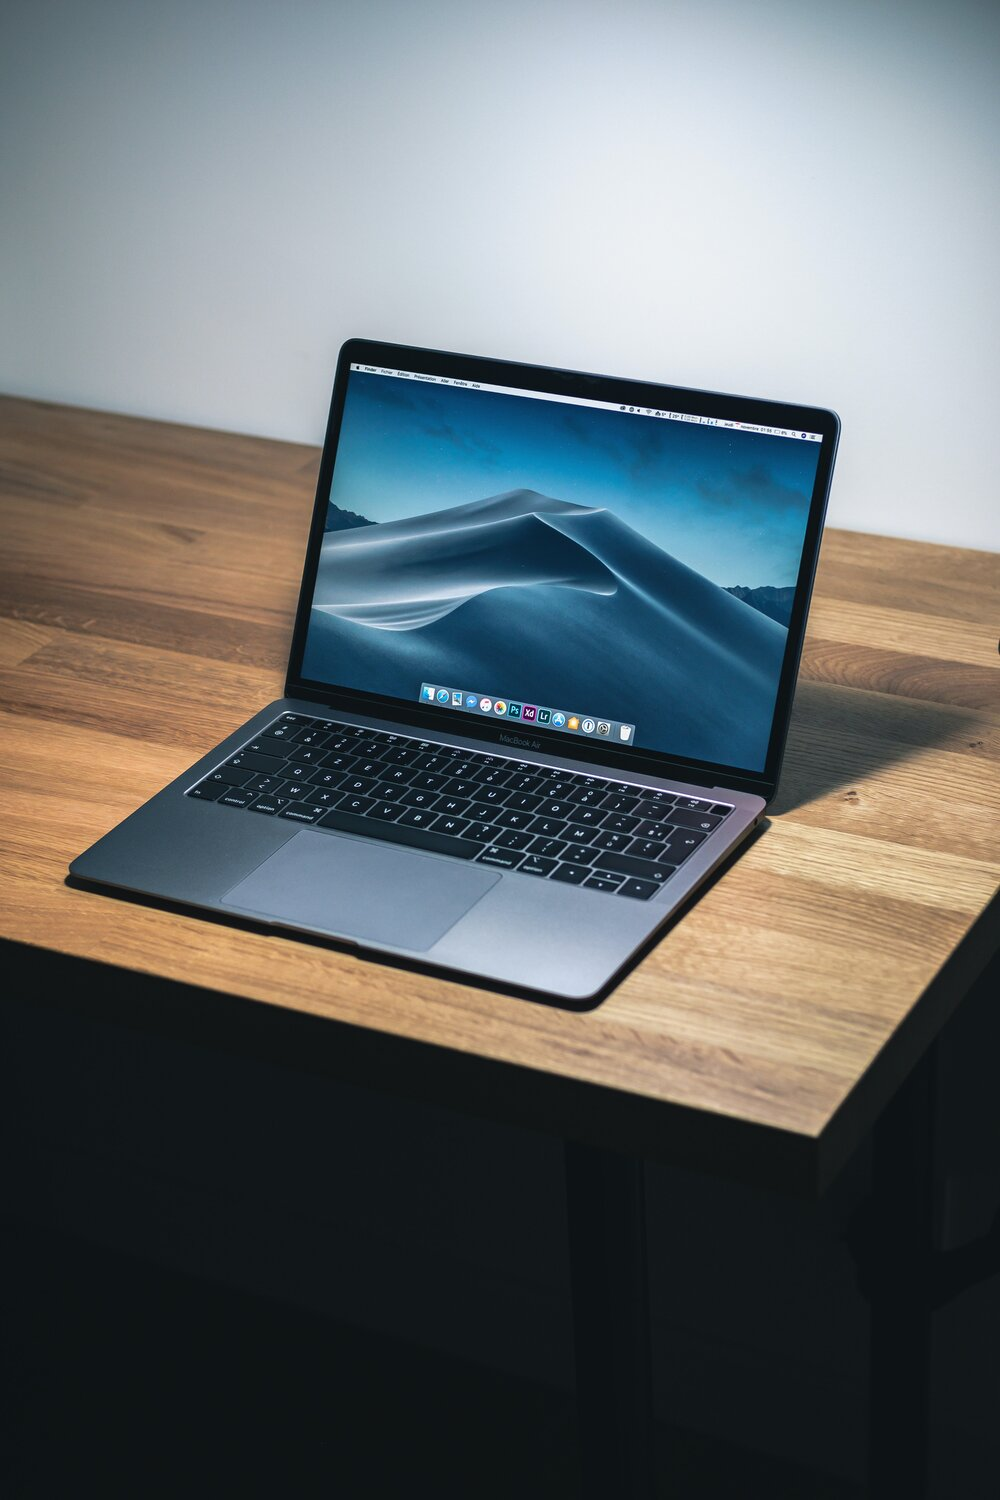 macbook pro on a surface